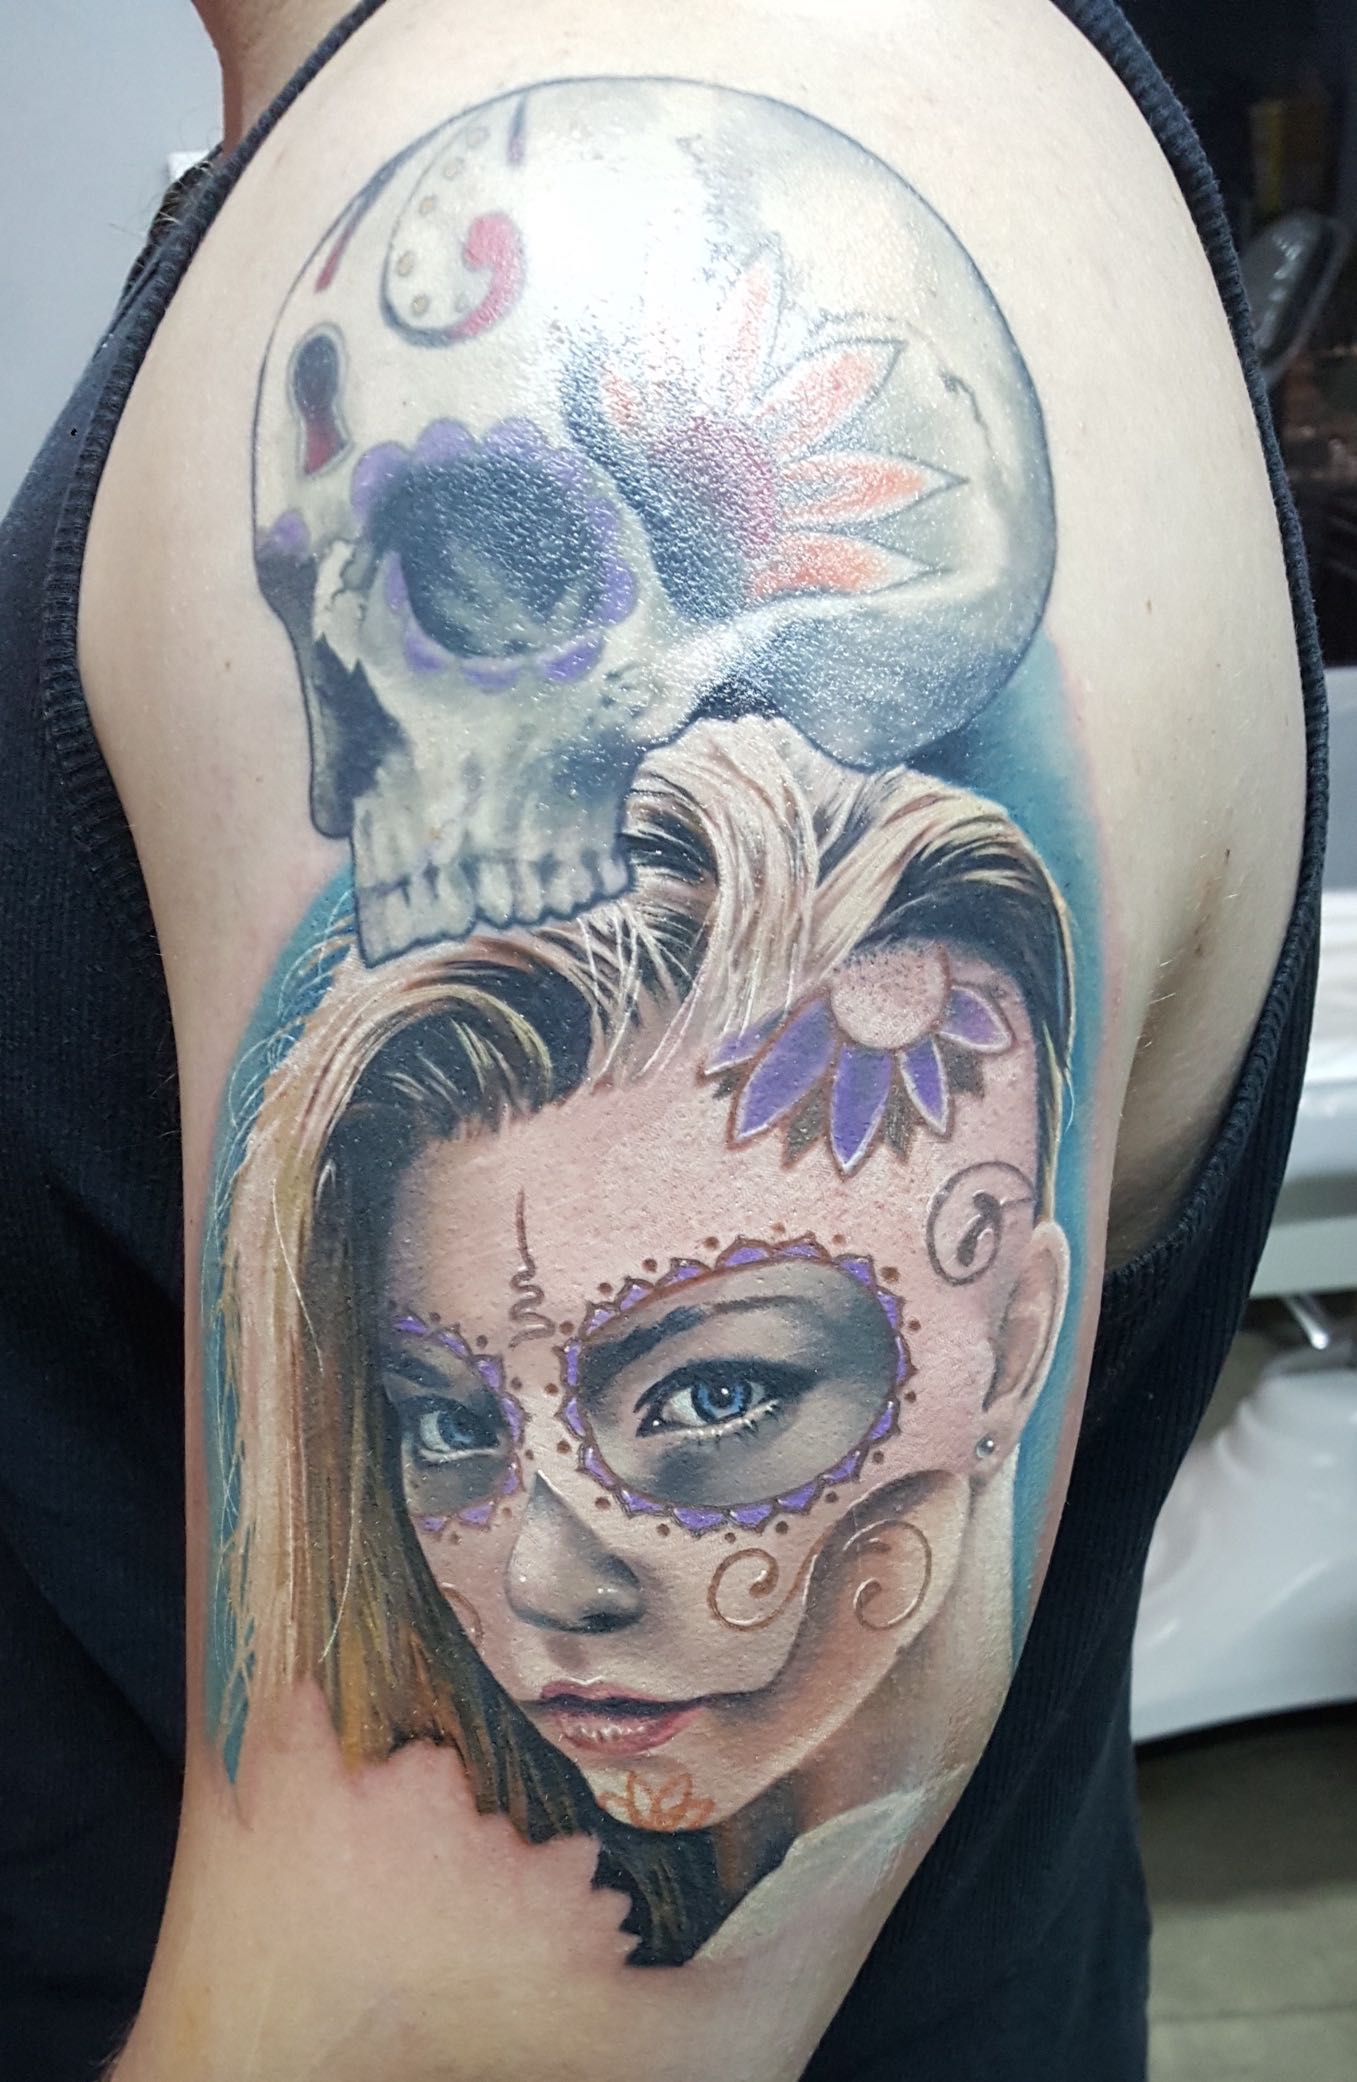 An example of Bryan Du Rand's tattoo work